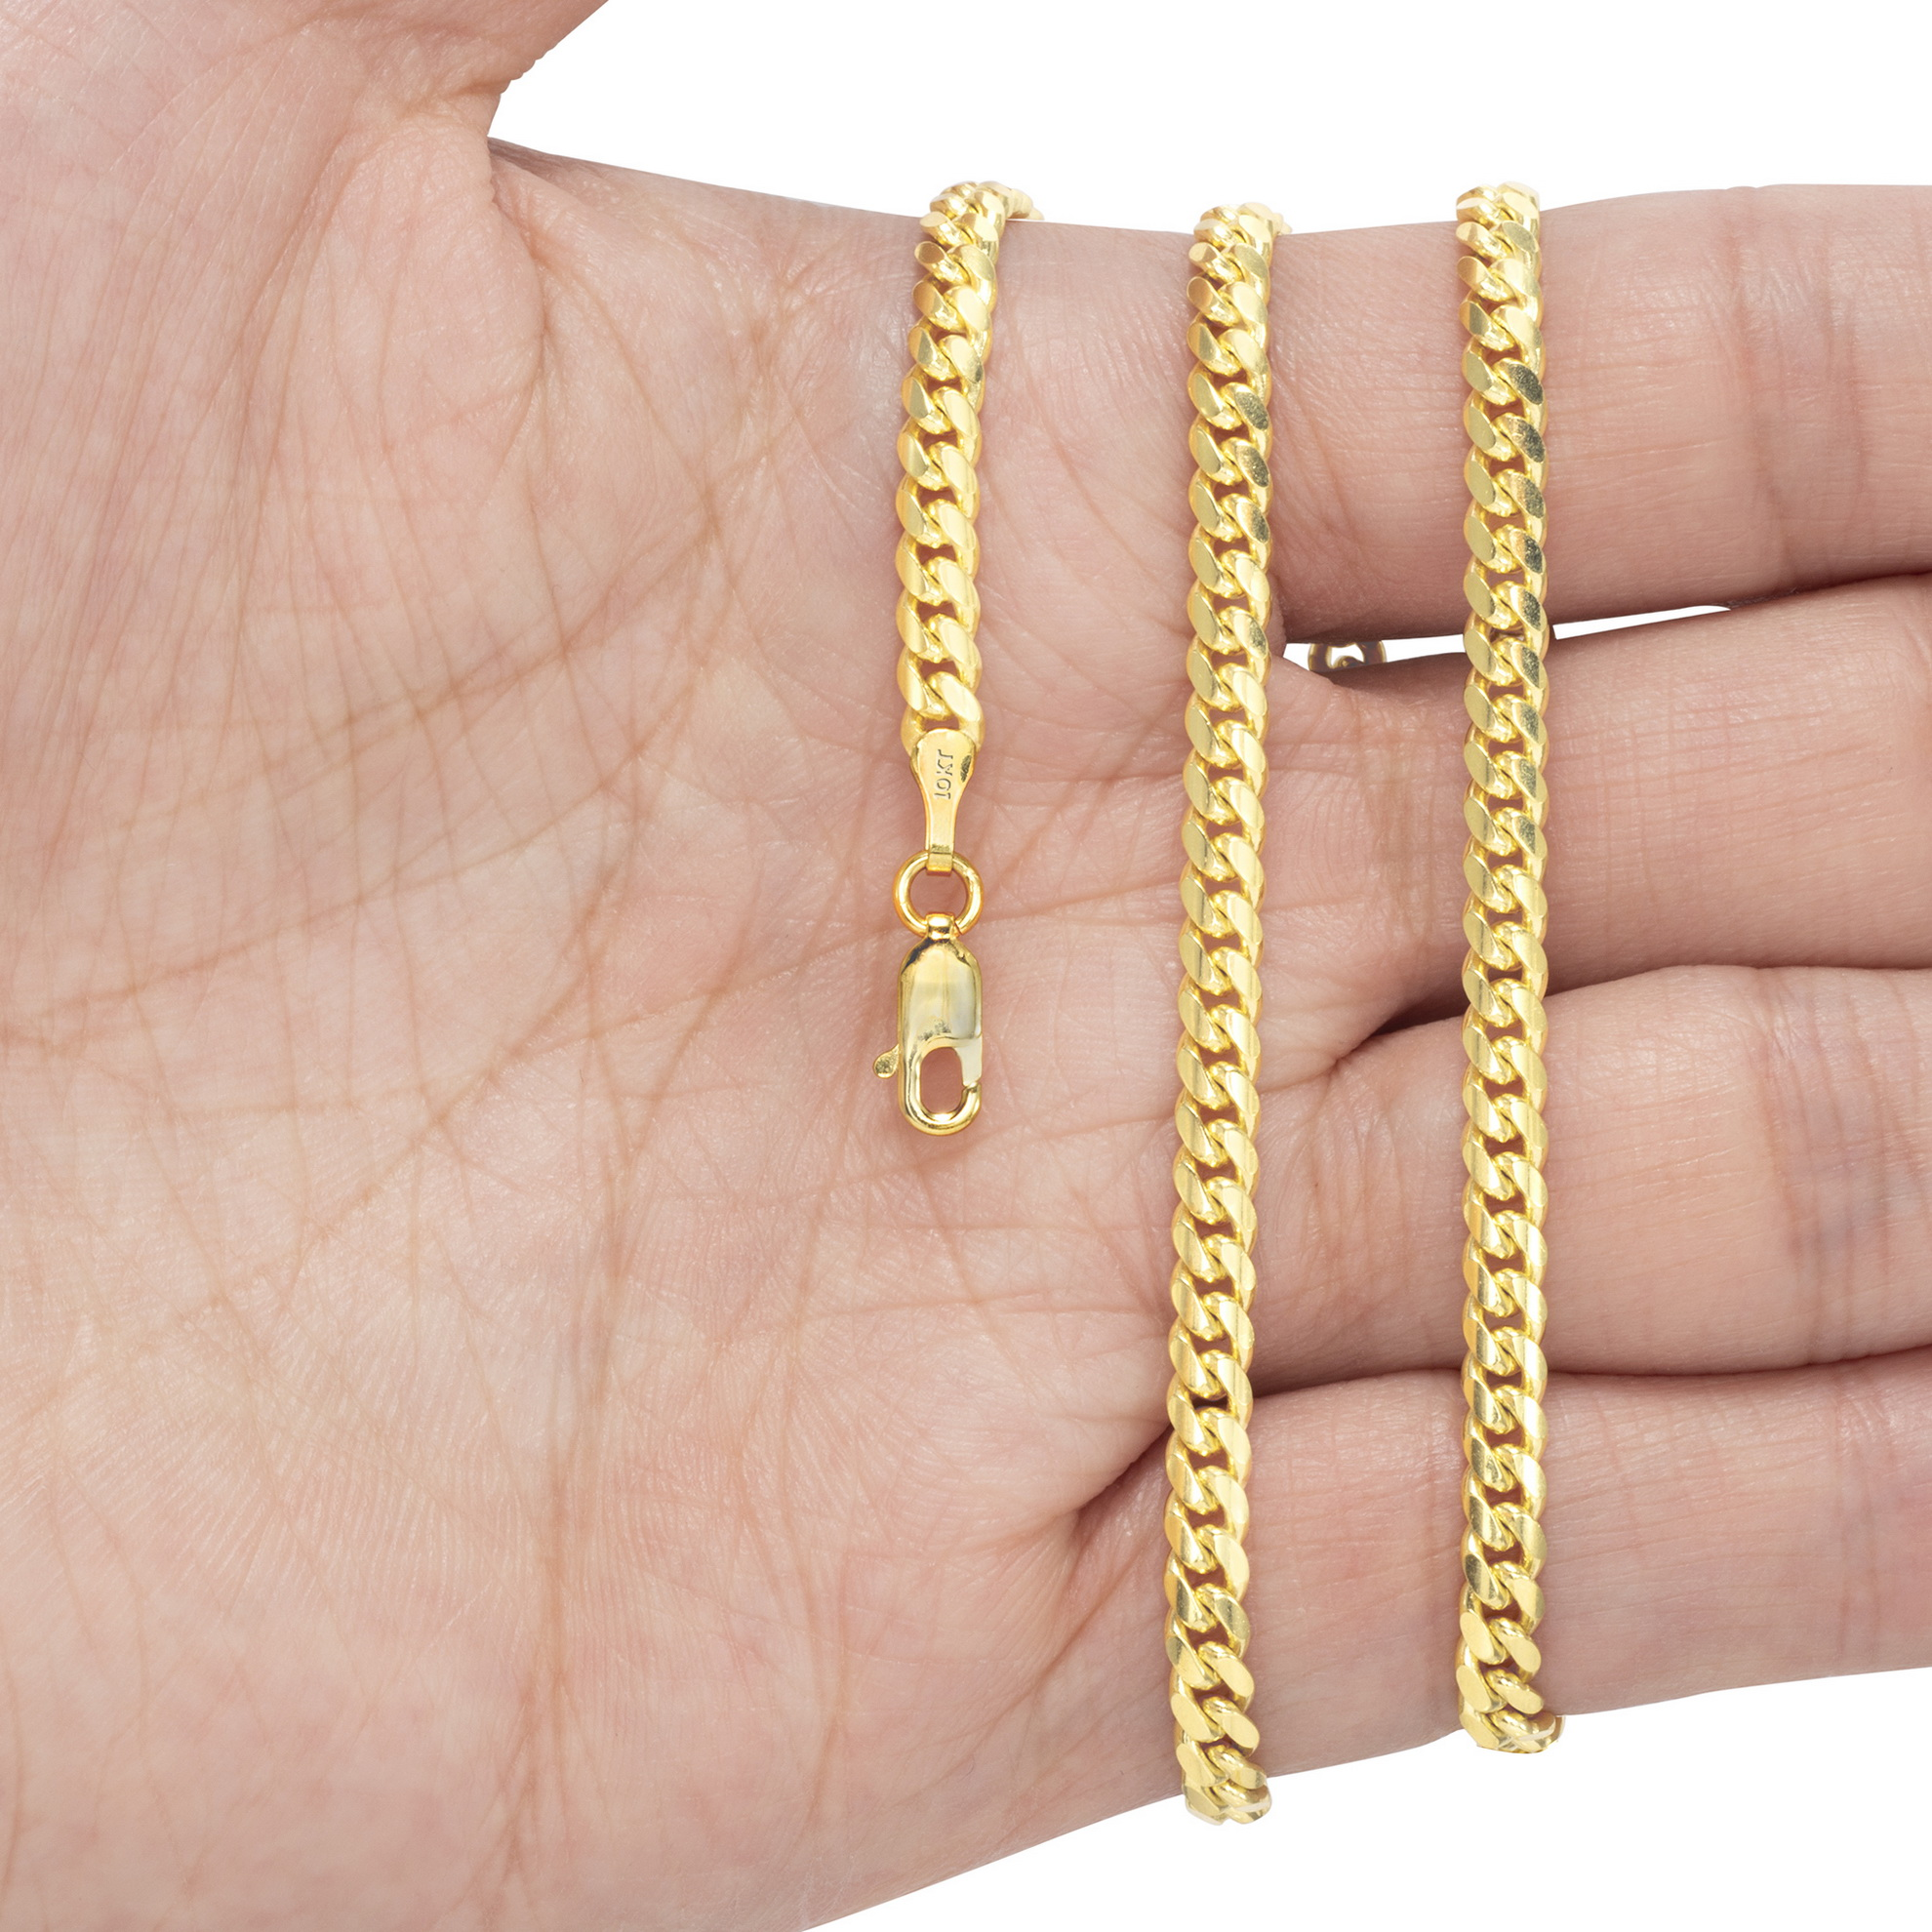 10K-Yellow-Gold-Solid-2-7mm-10mm-Miami-Cuban-Link-Chain-Necklace-Bracelet-7-034-30-034 thumbnail 18